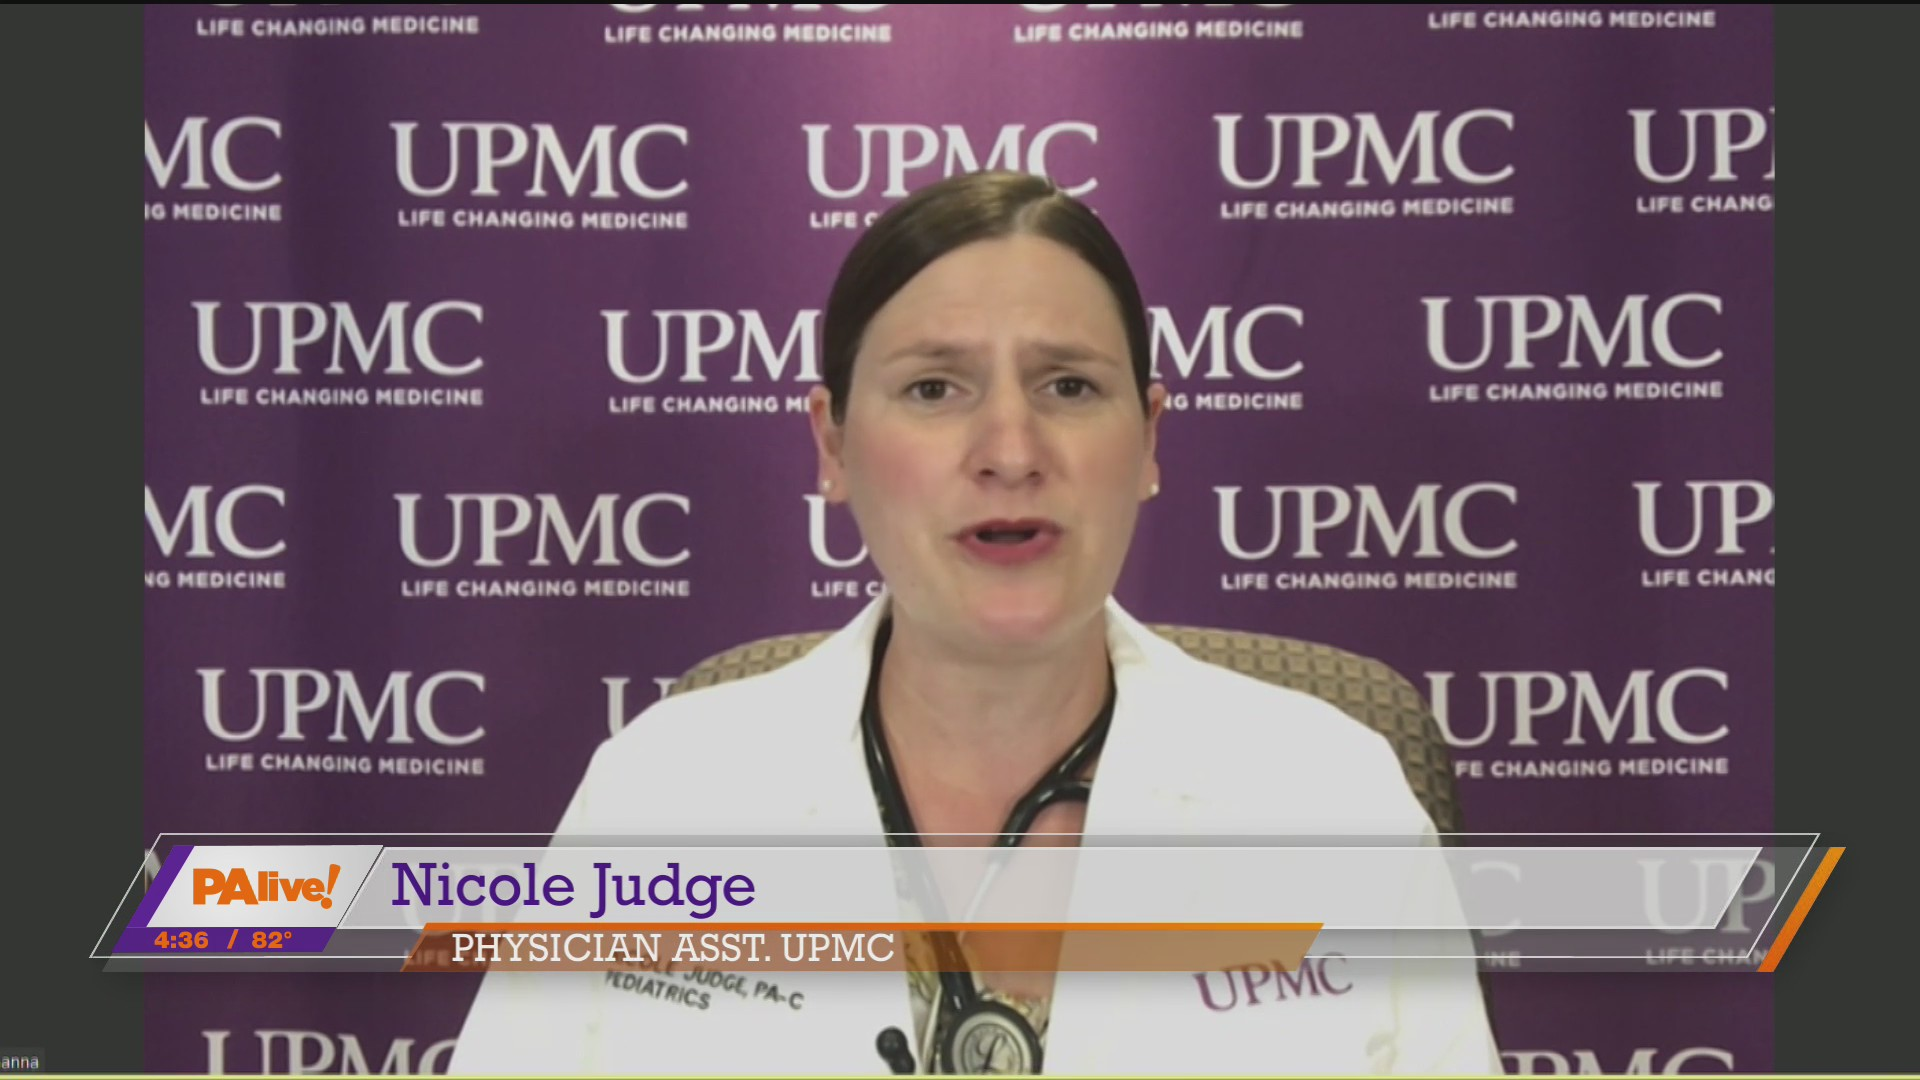 PAlive! UPMC (Child Wellness Visits) July 13, 2020